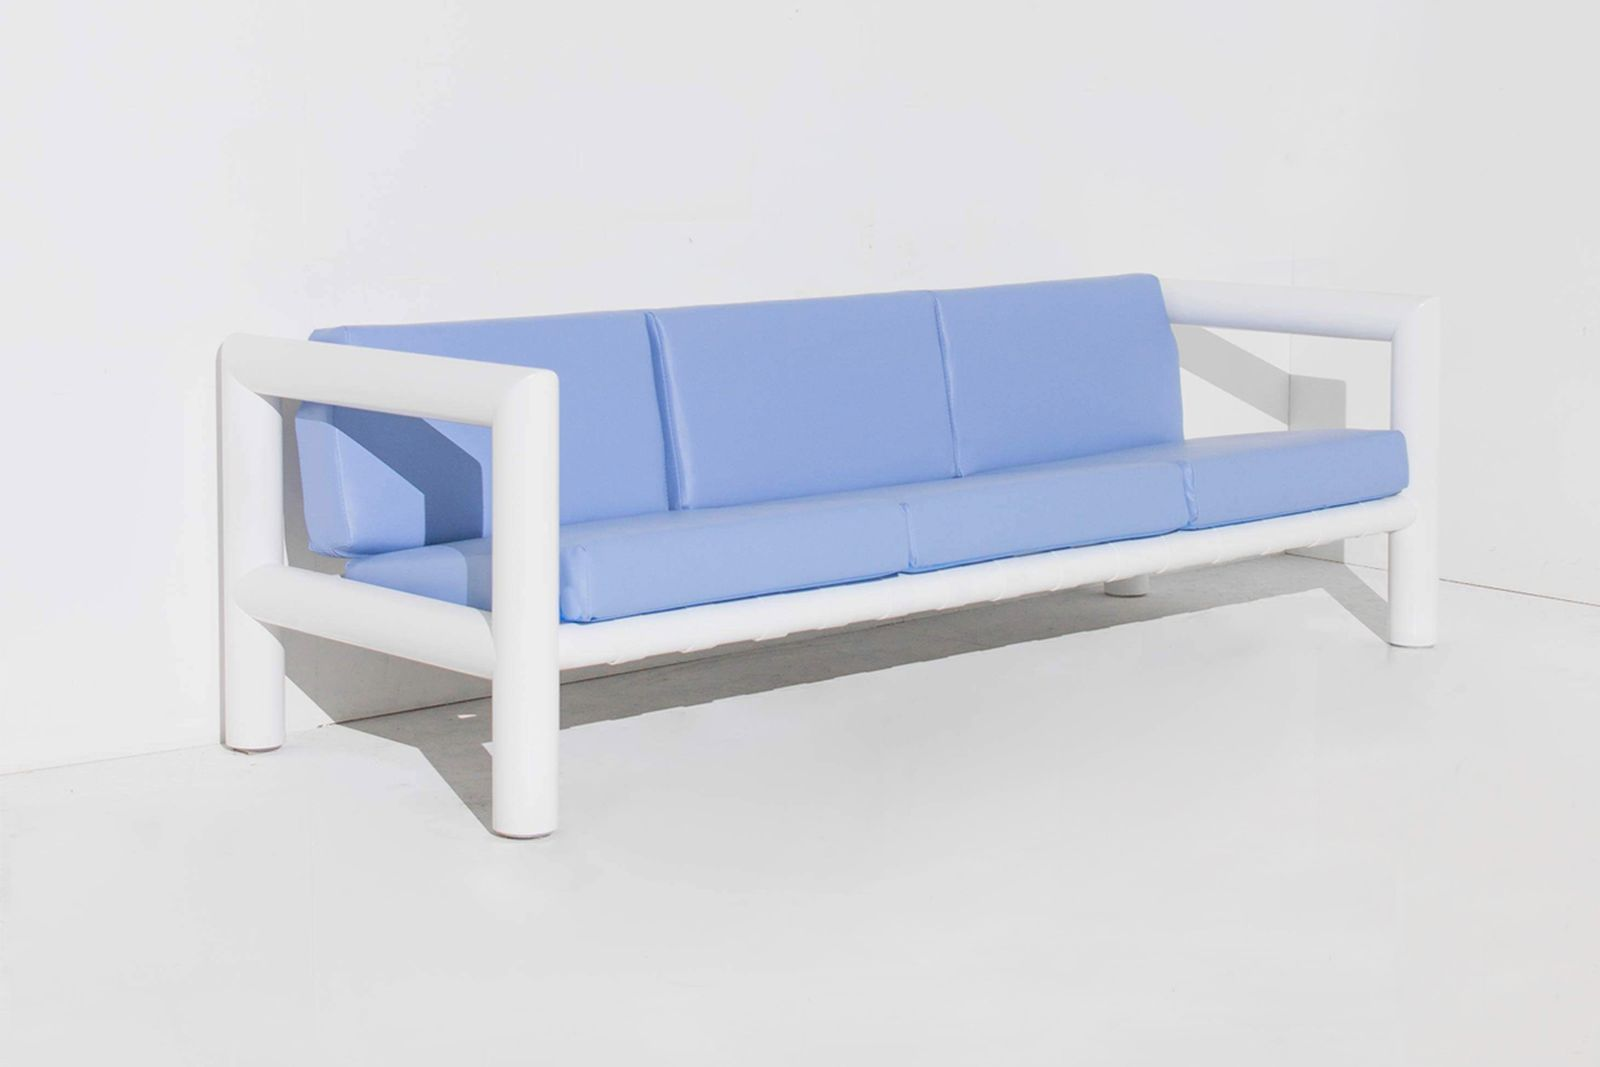 good-time-upgrade-couch-04